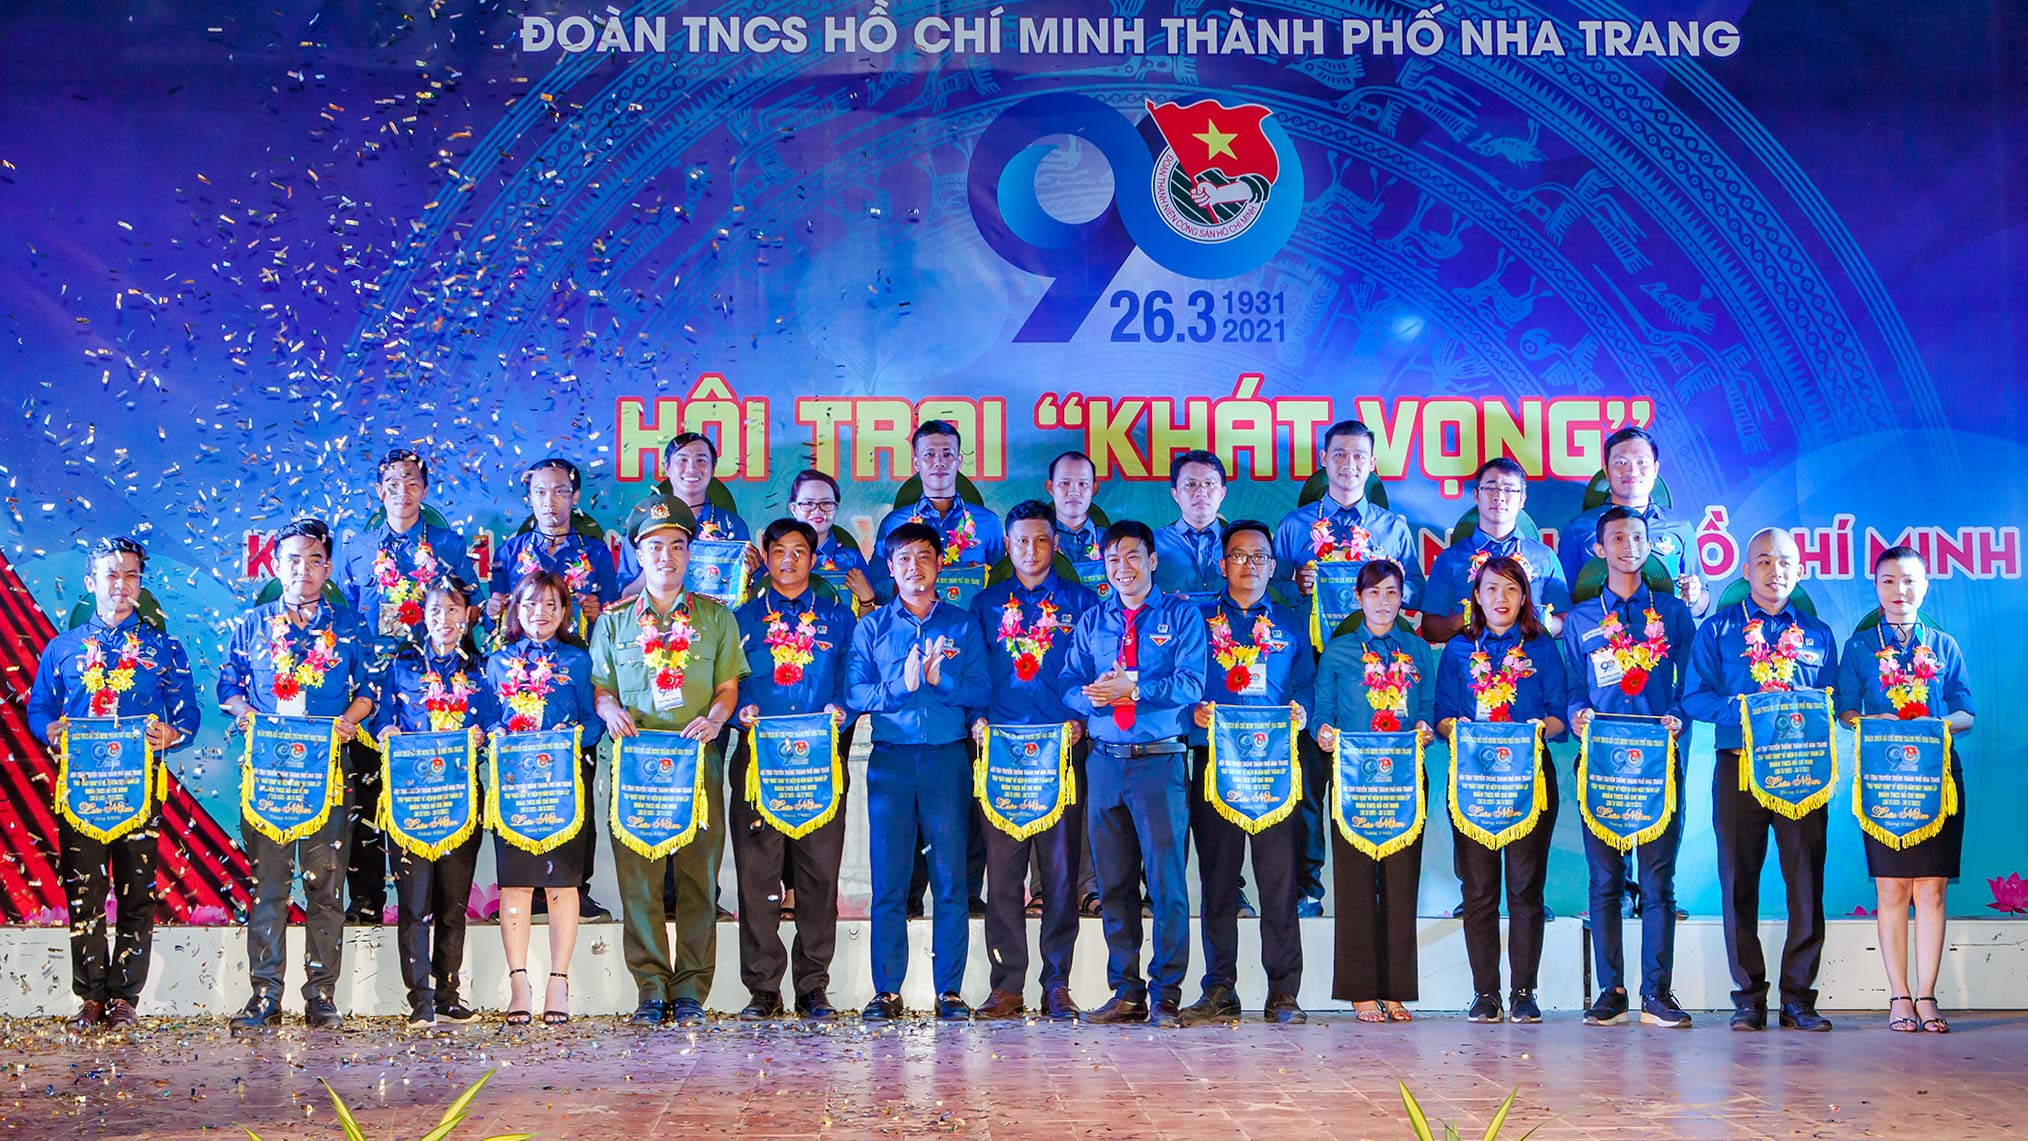 On this occasion, the camp organizers commend 90 elite Nha Trang Youth Union leaders